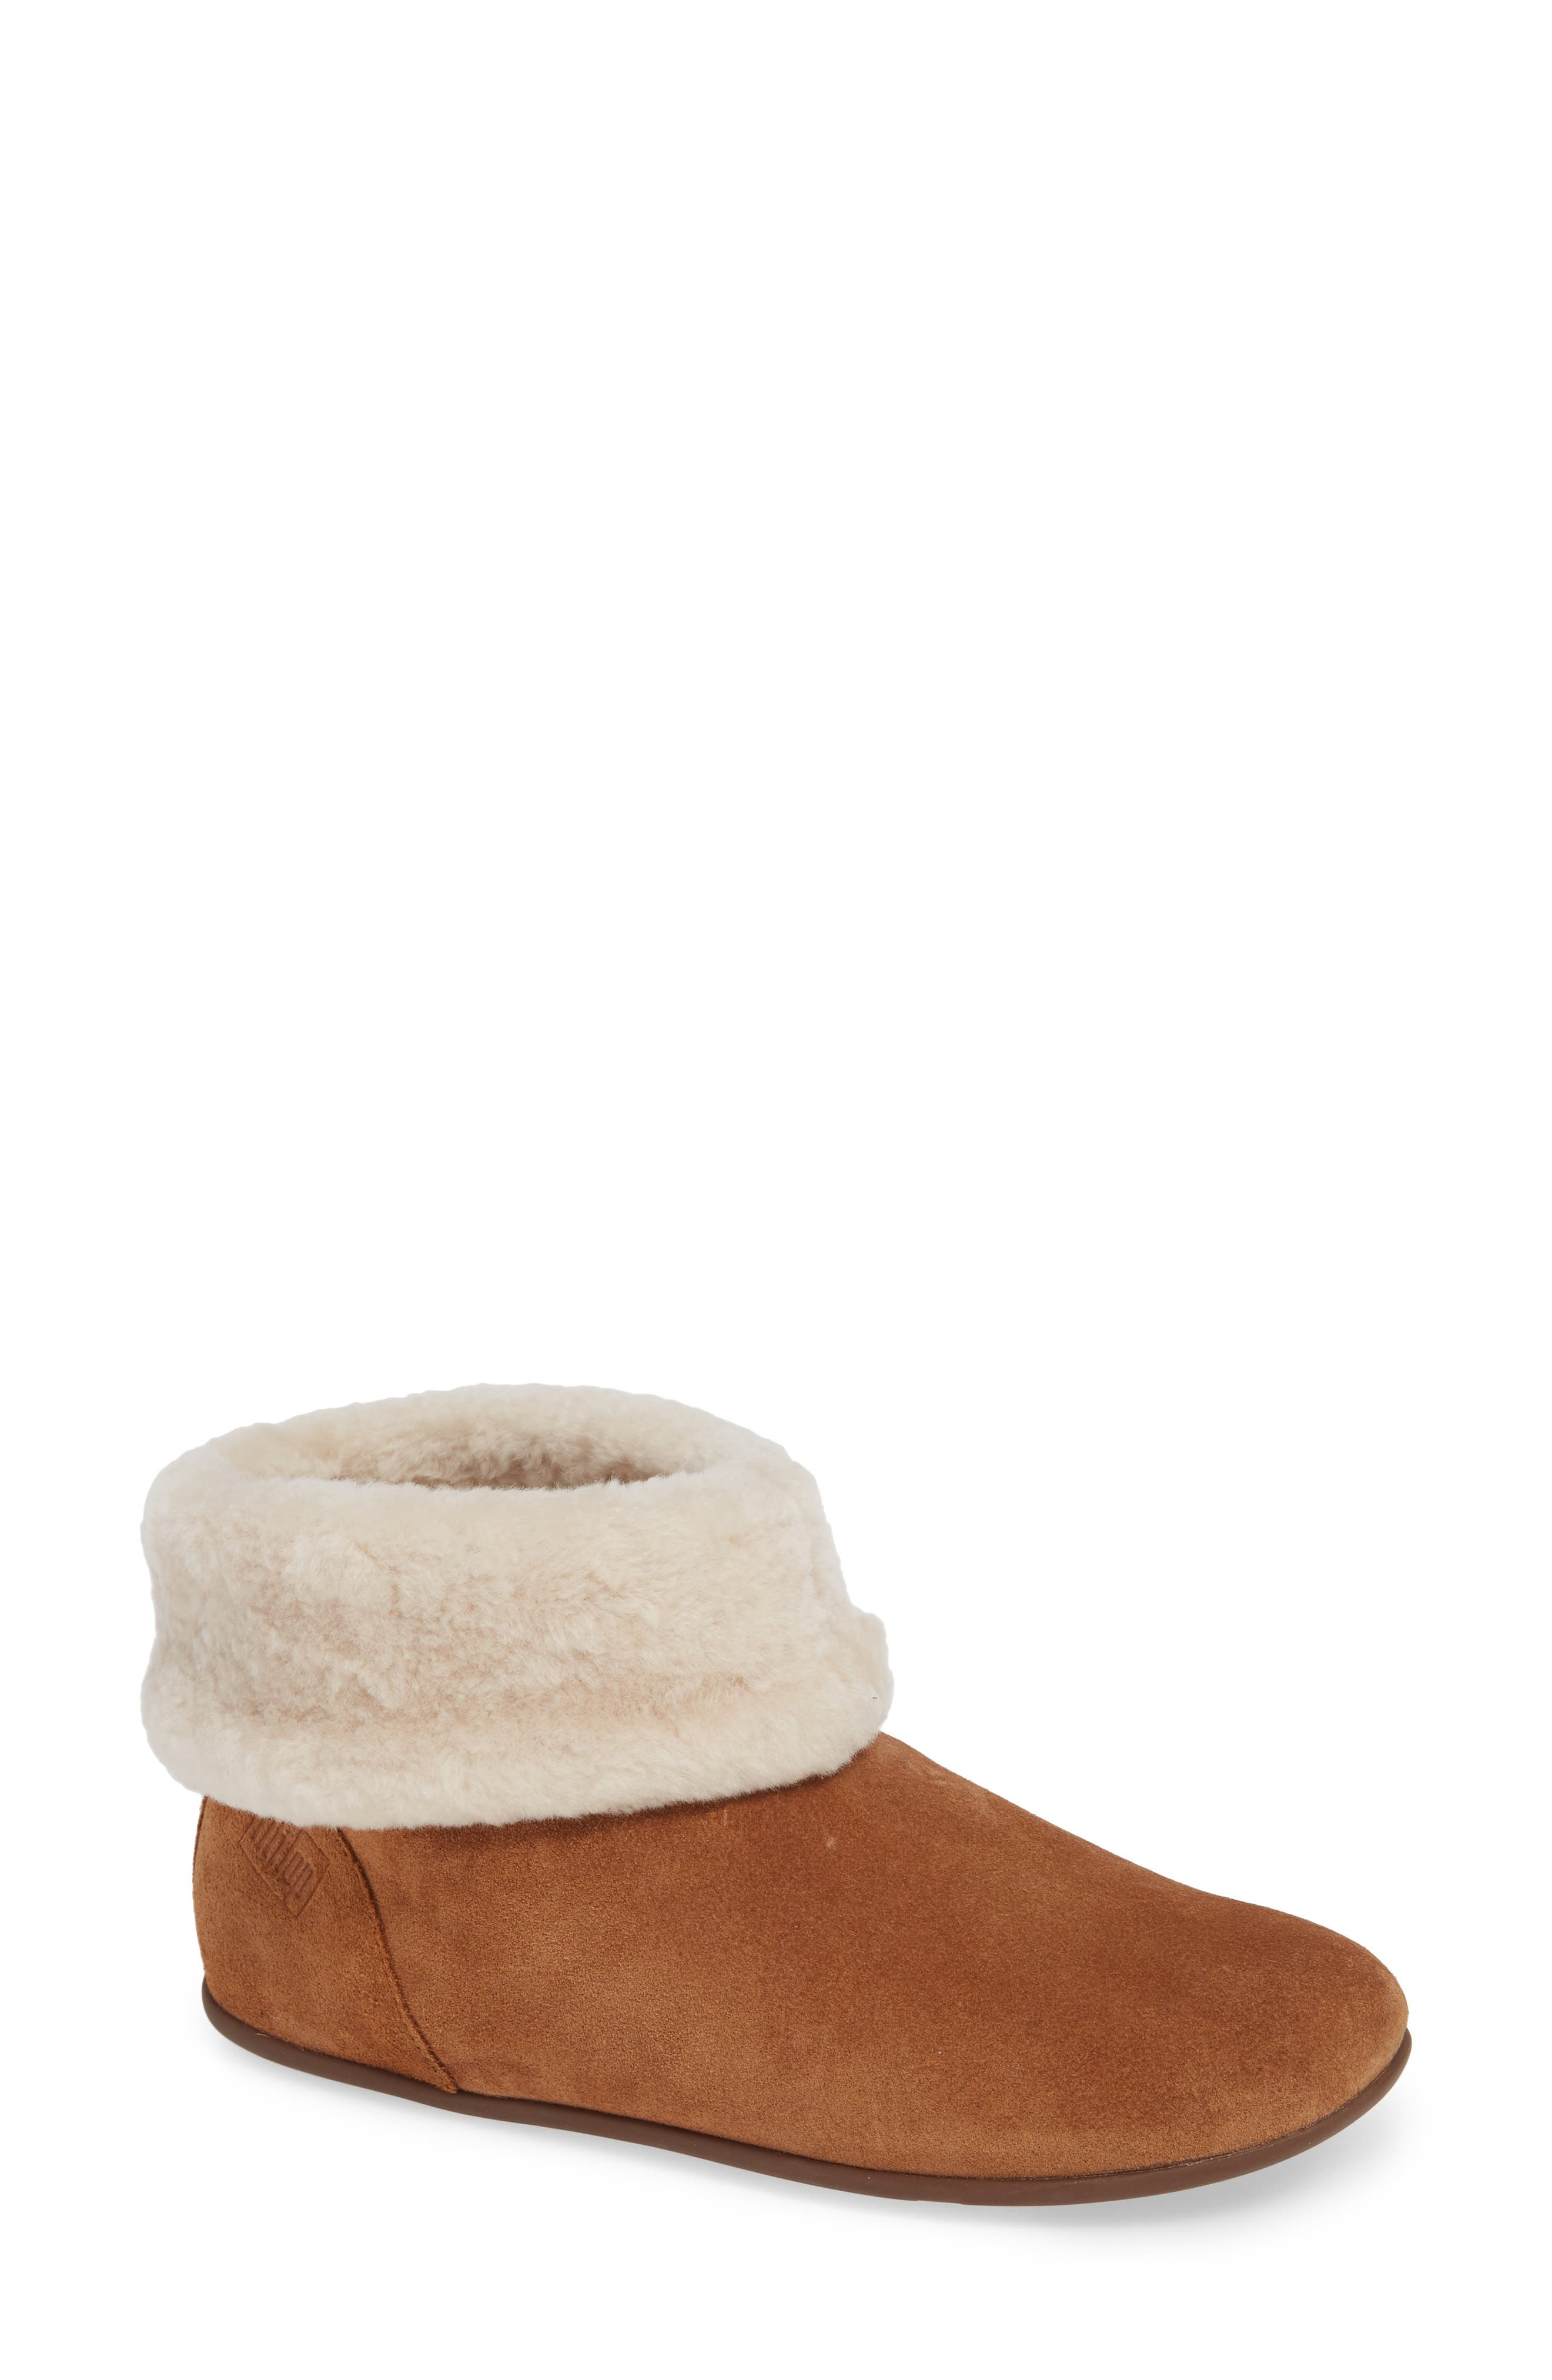 Fitflop Sarah Genuine Shearling Trim Bootie, Beige